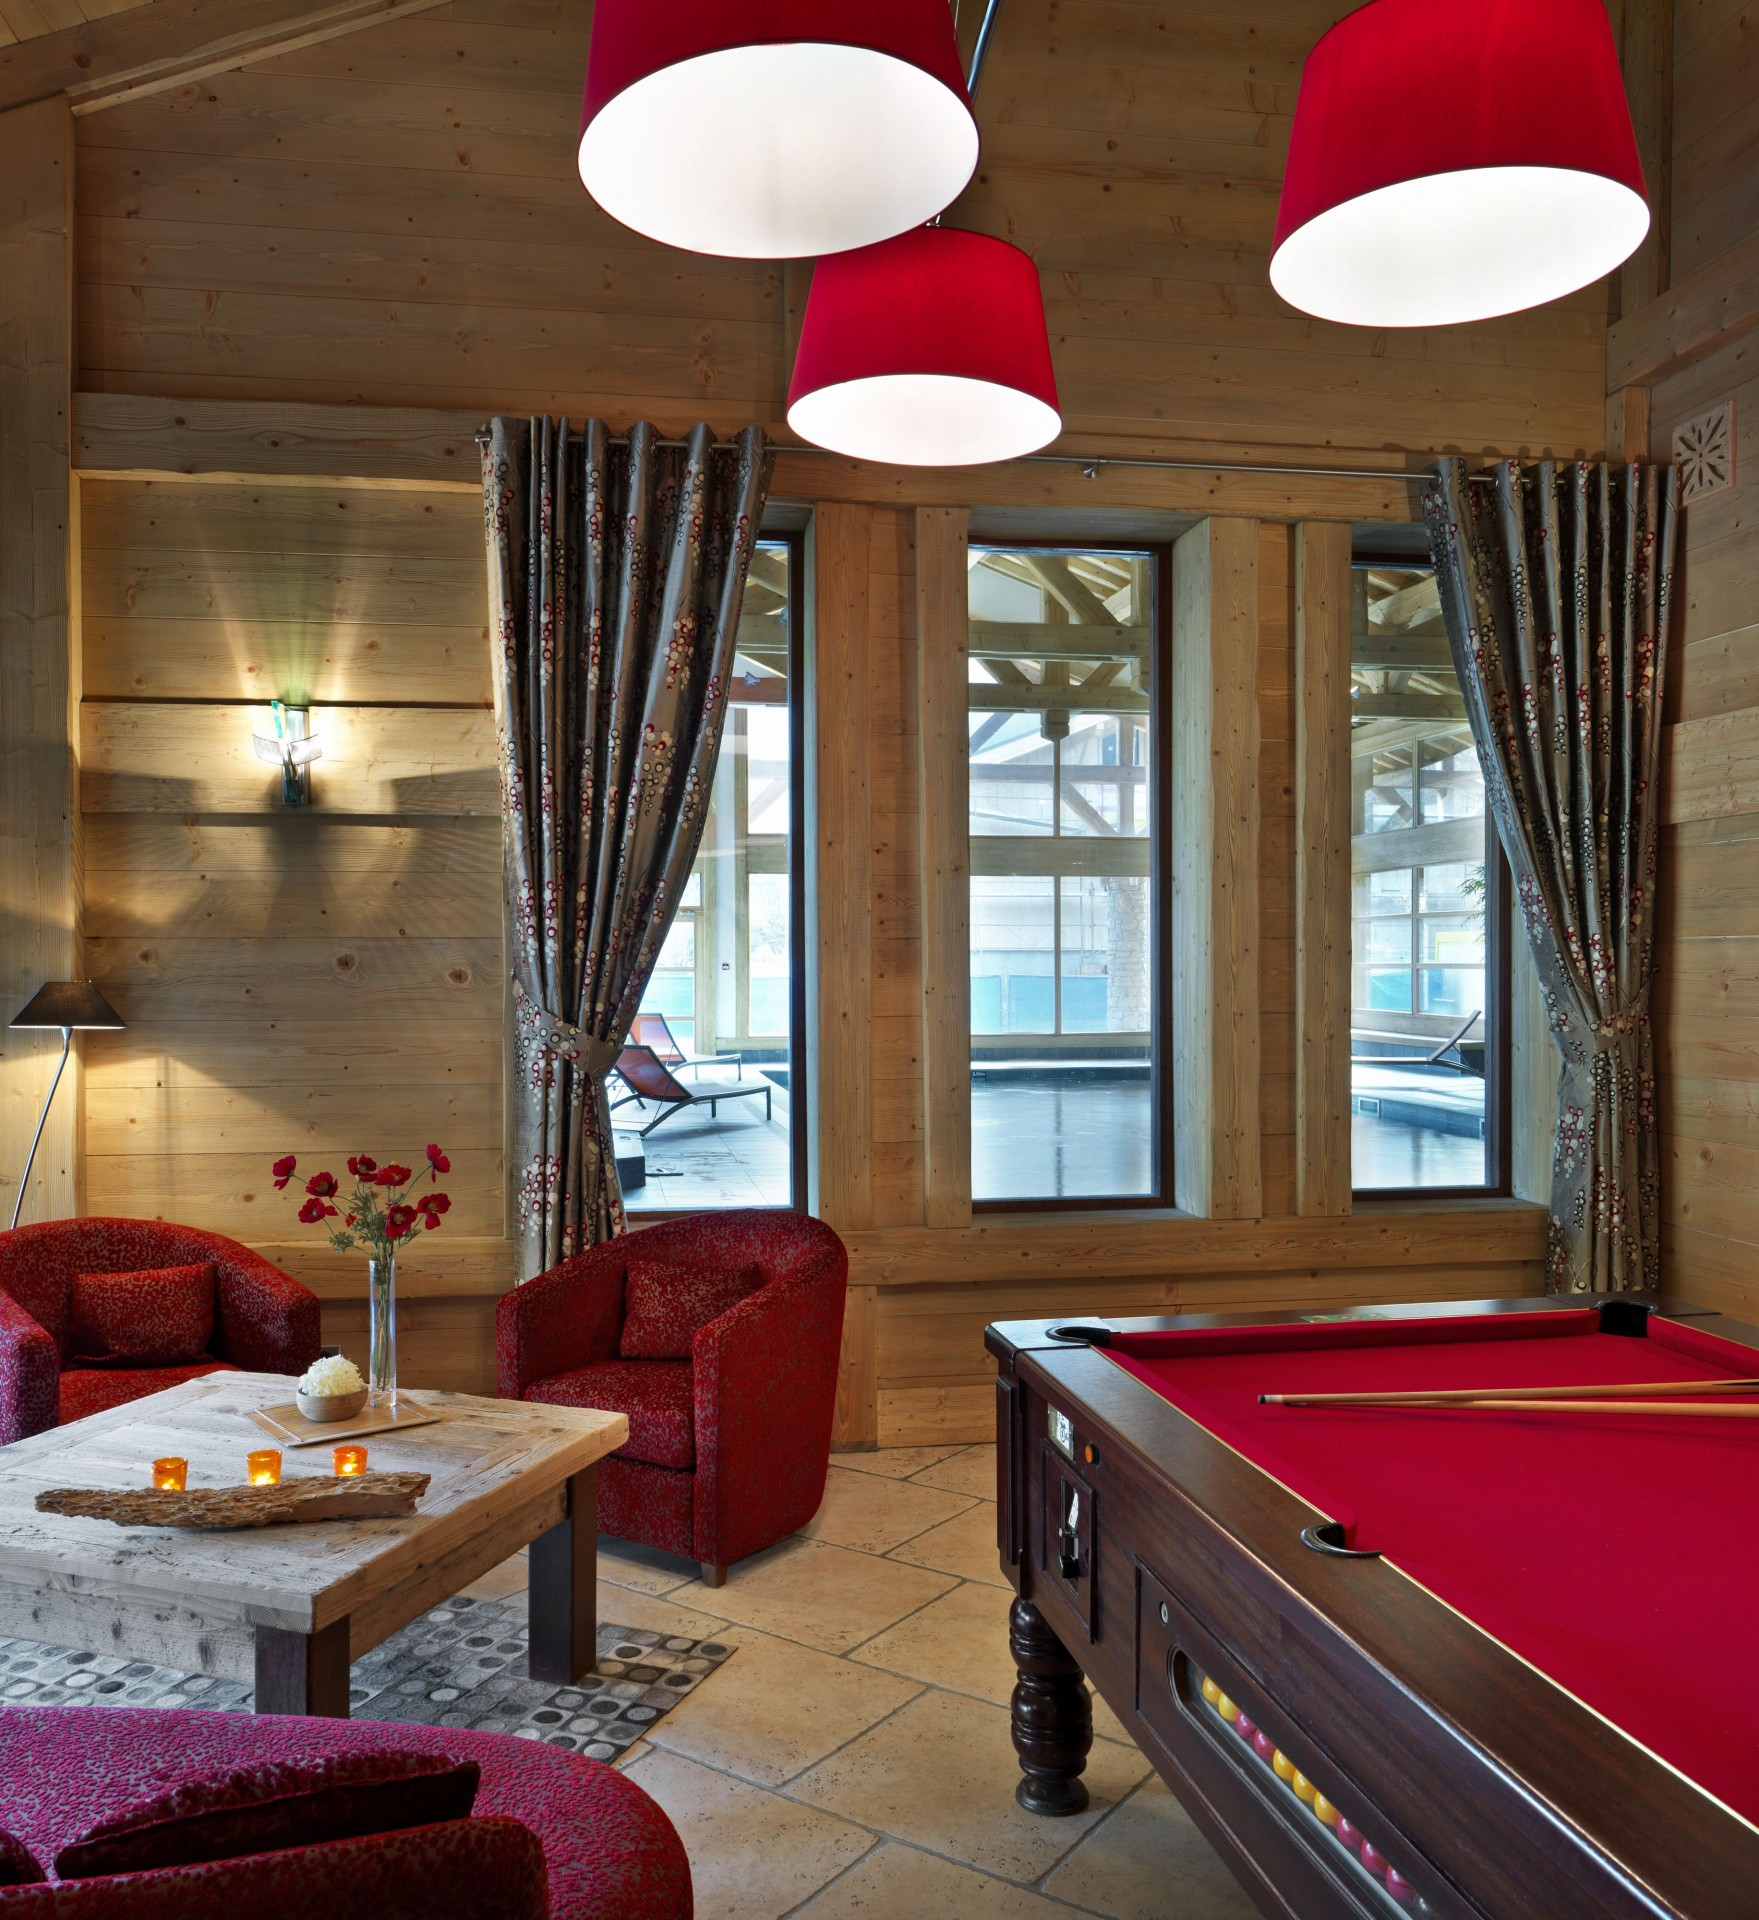 Samoens Location Appartement Luxe Salam Réception